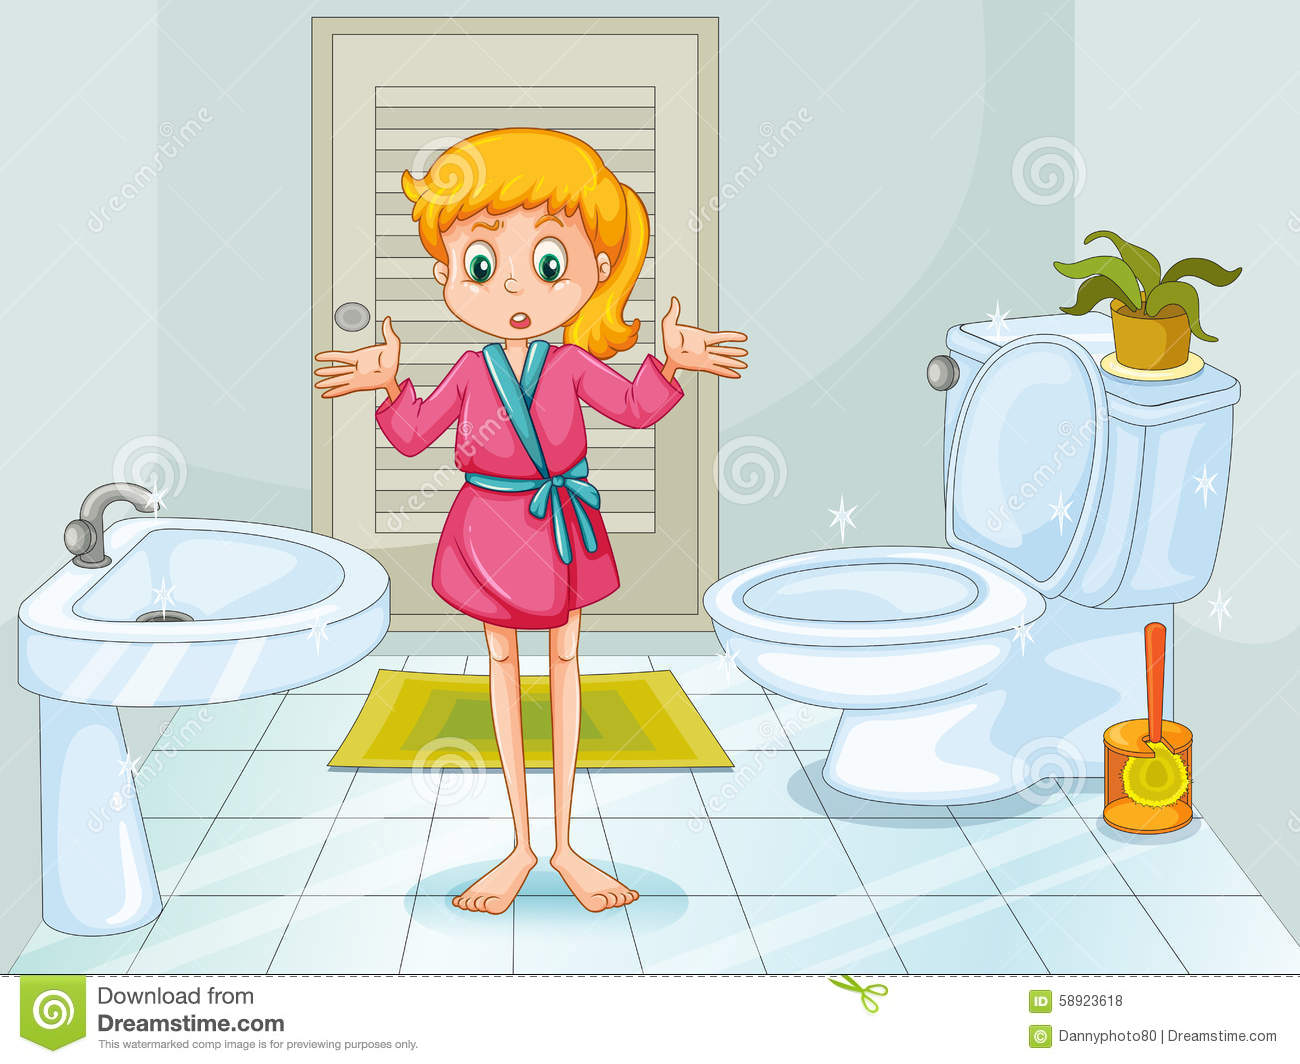 Imagen De Baño Limpio:Illustration Boy Bathroom